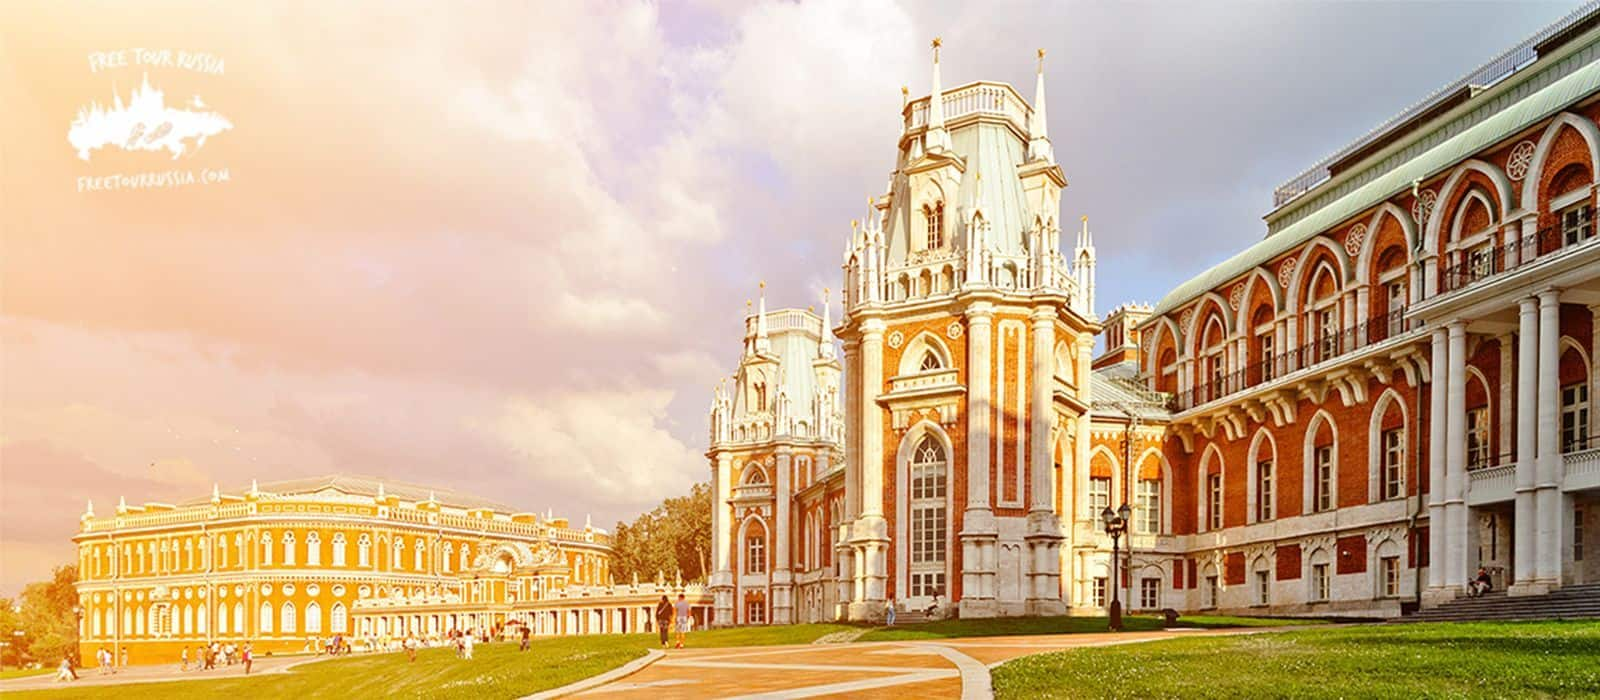 Kolomenskoe and Tsaritsyno Tour in Moscow